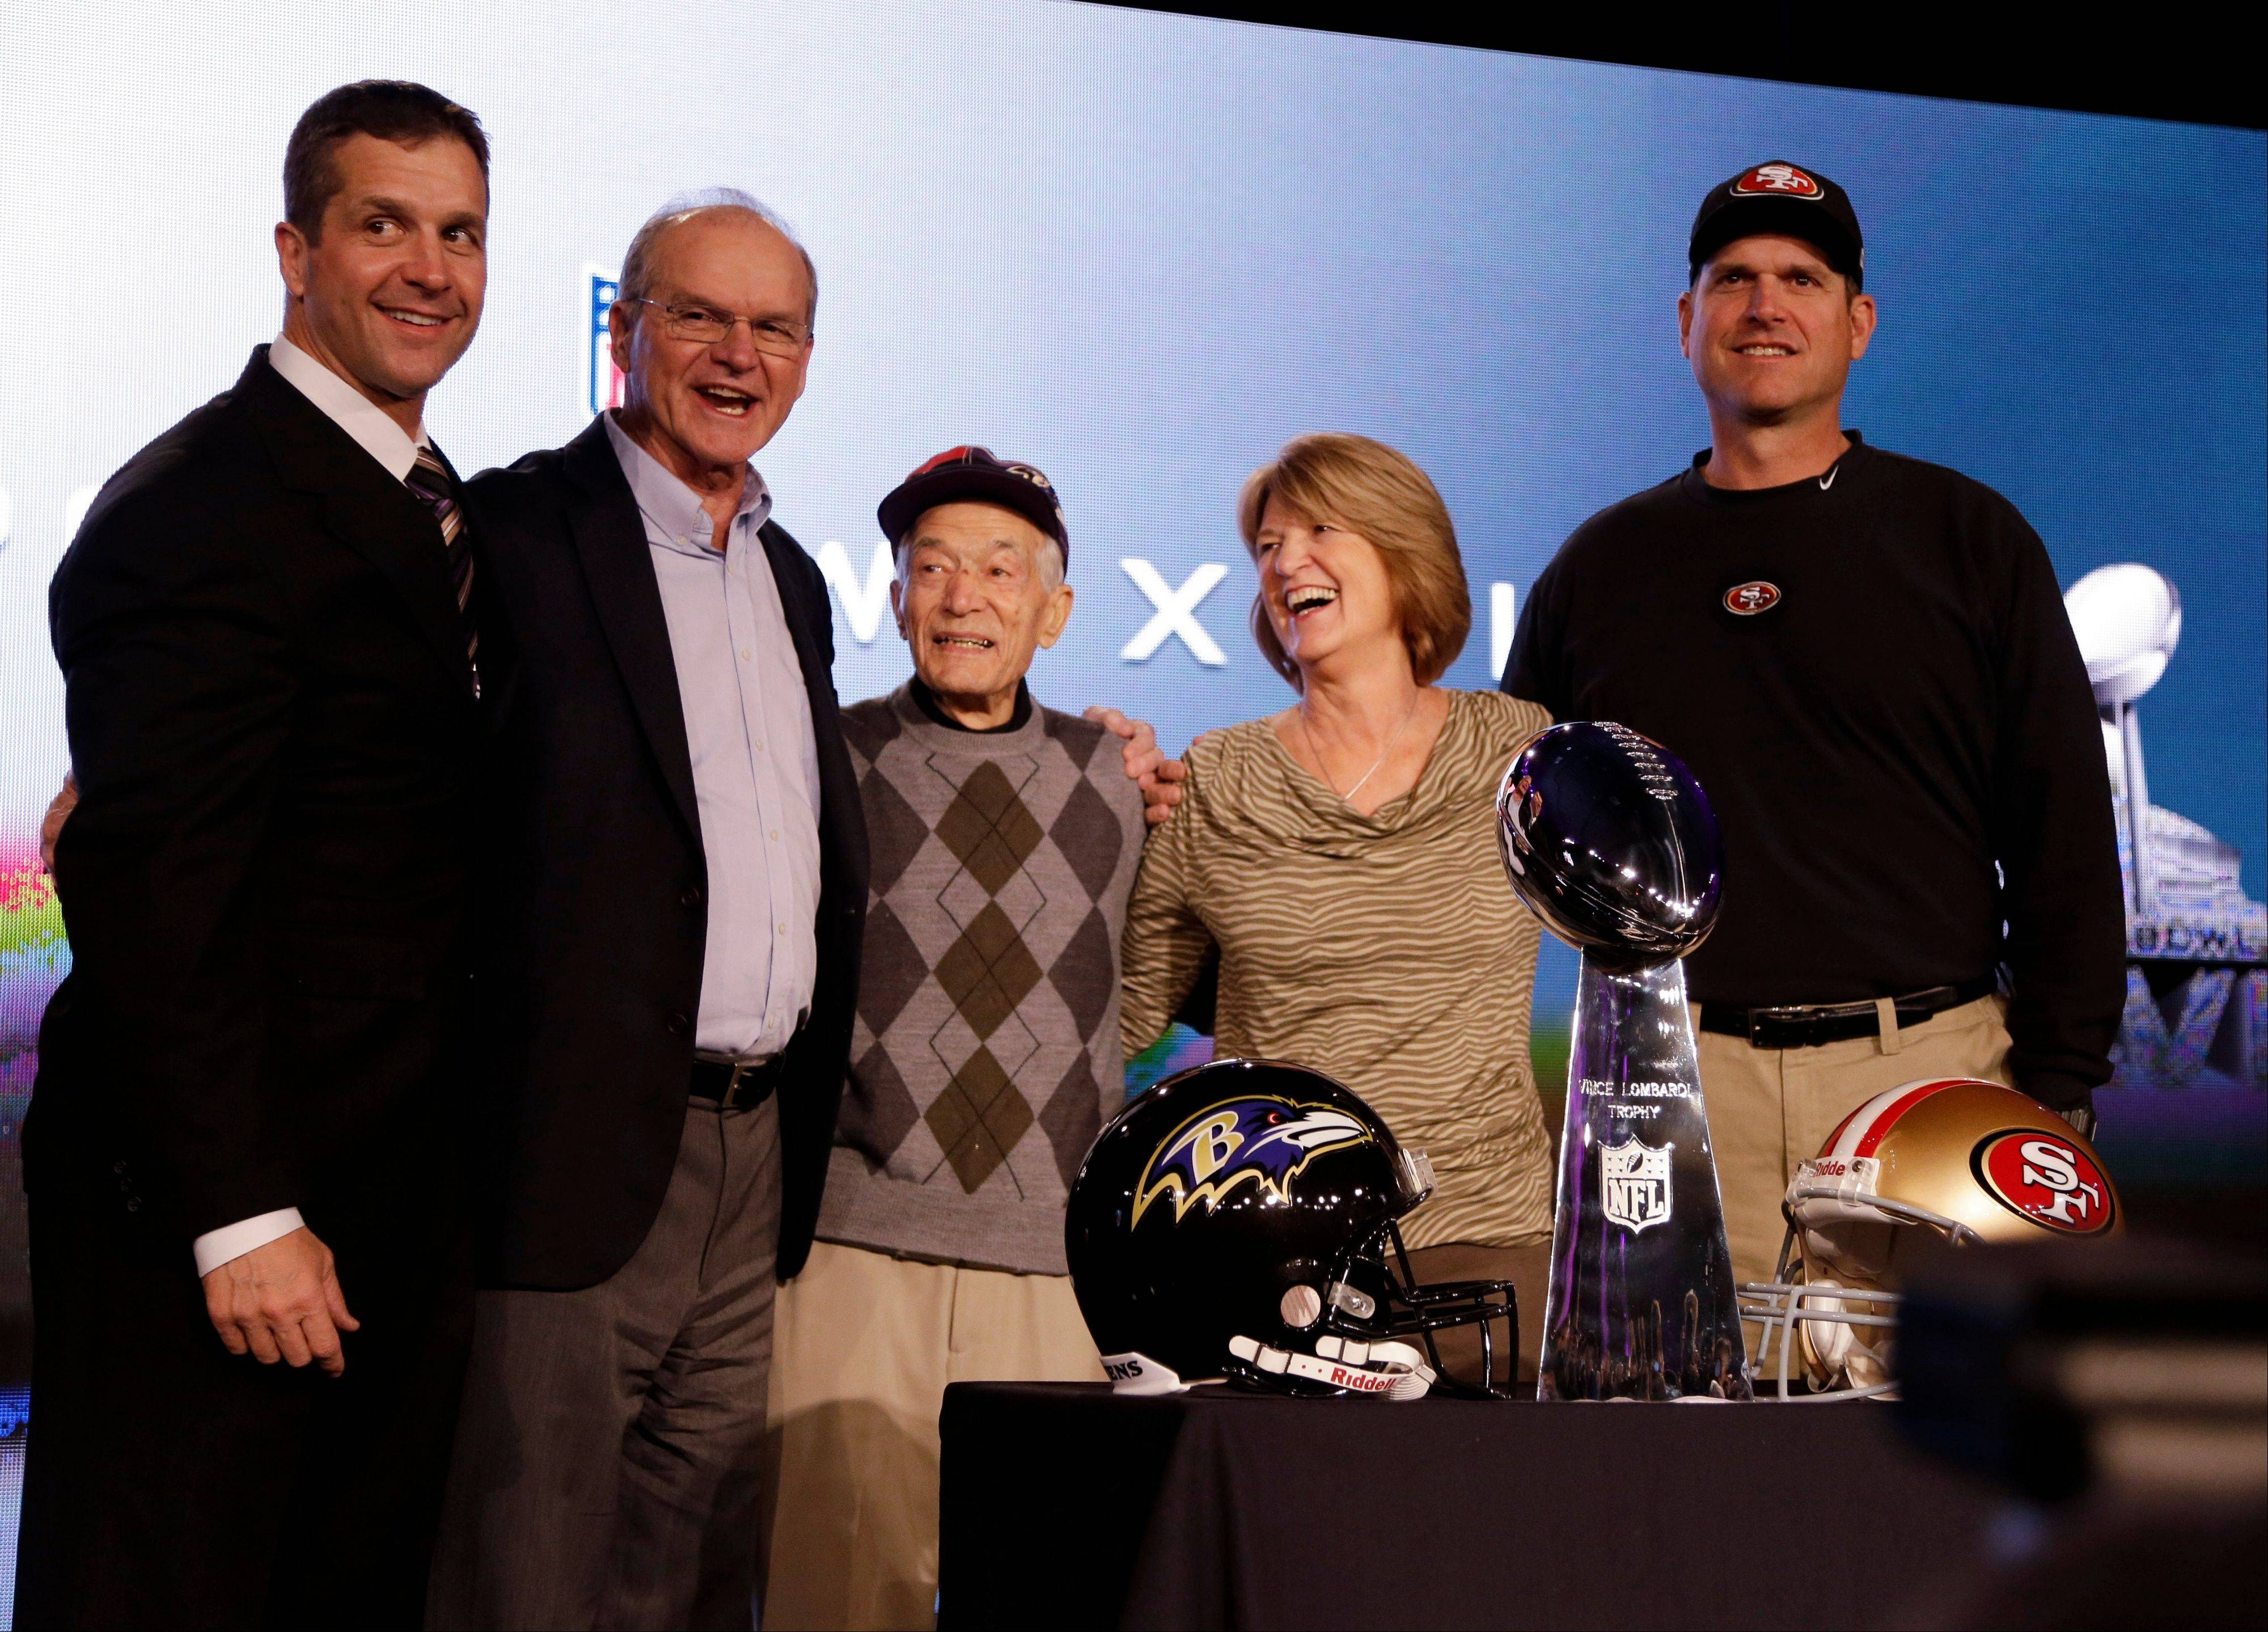 San Francisco 49ers head coach Jim Harbaugh, right, and Baltimore Ravens head coach John Harbaugh, left, pose with their parents, Jack and Jackie, and grandfather Joe Cipiti during a news conference for the NFL Super Bowl XLVII football game Friday, Feb. 1, 2013, in New Orleans.